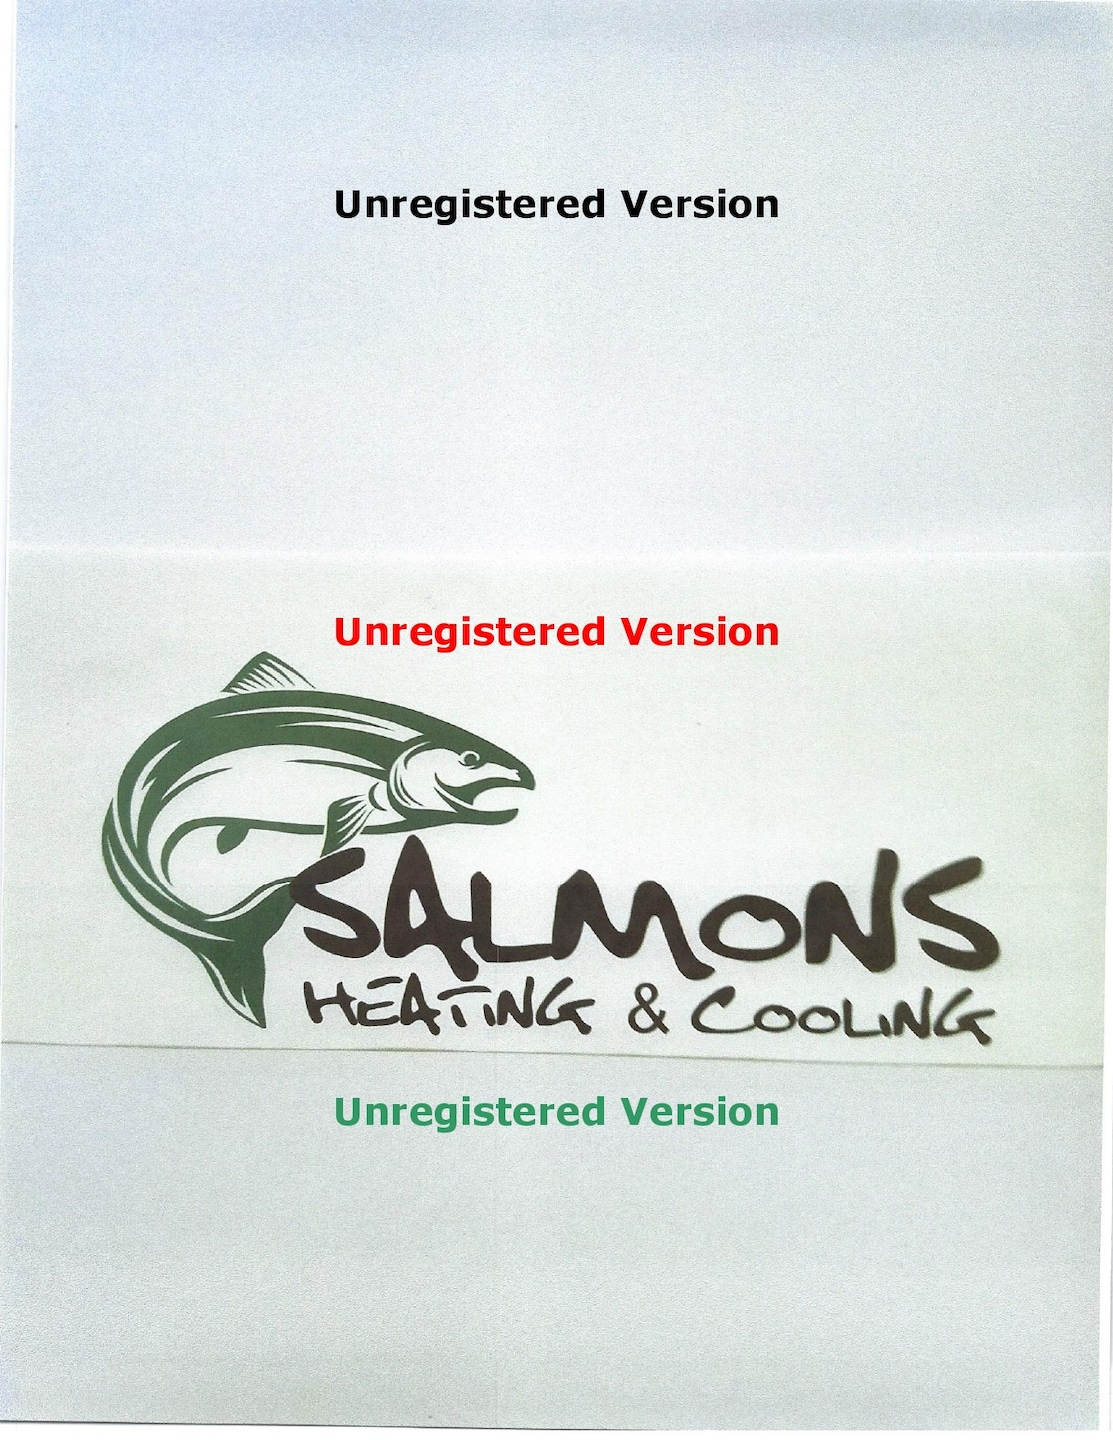 Salmons Heating & Cooling